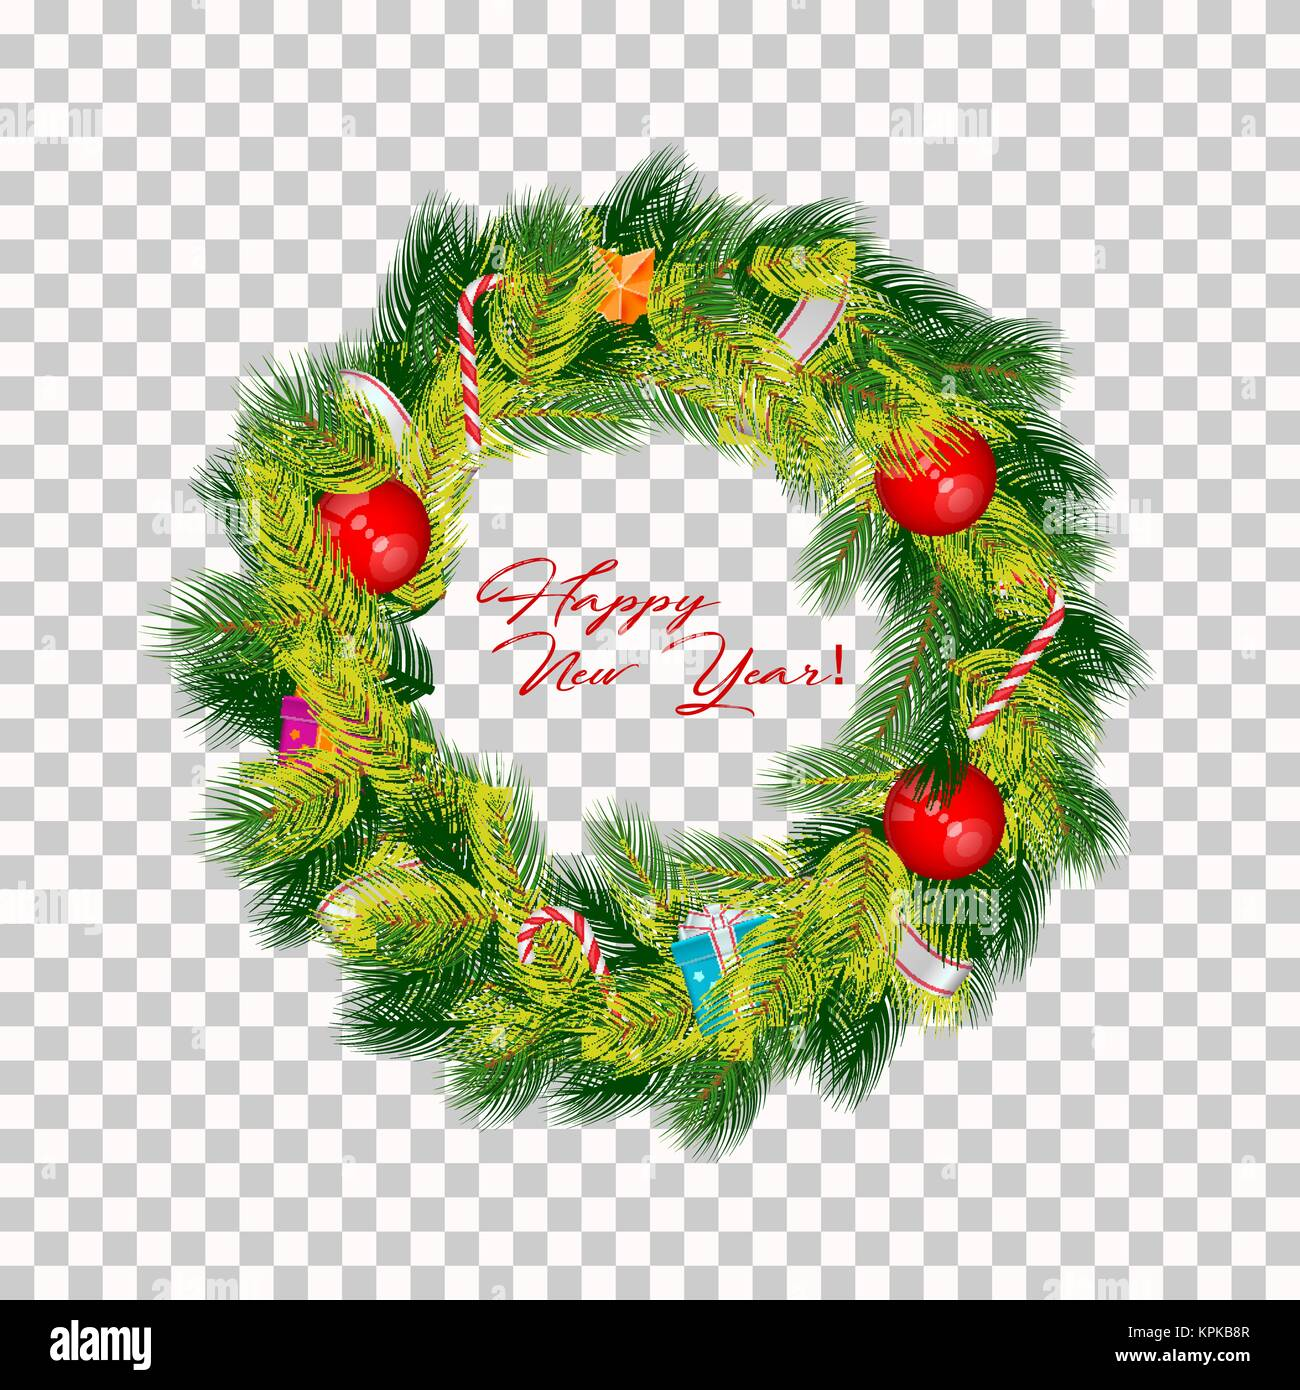 Realistic Vector Christmas Wreath Isolated On Transparent